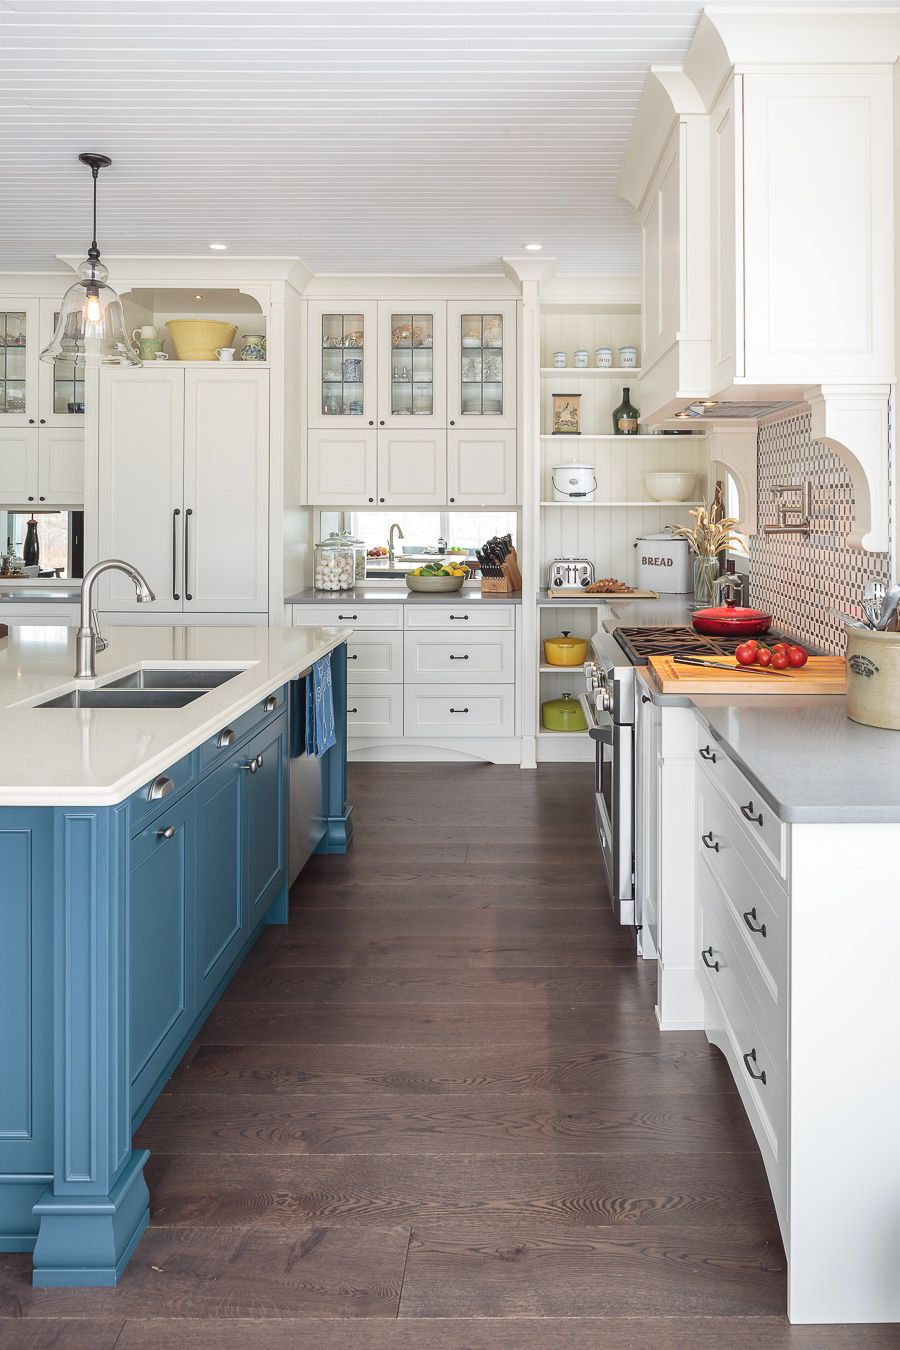 Dream kitchen part 4 Traditional Country Kitchen Design by Astro ...